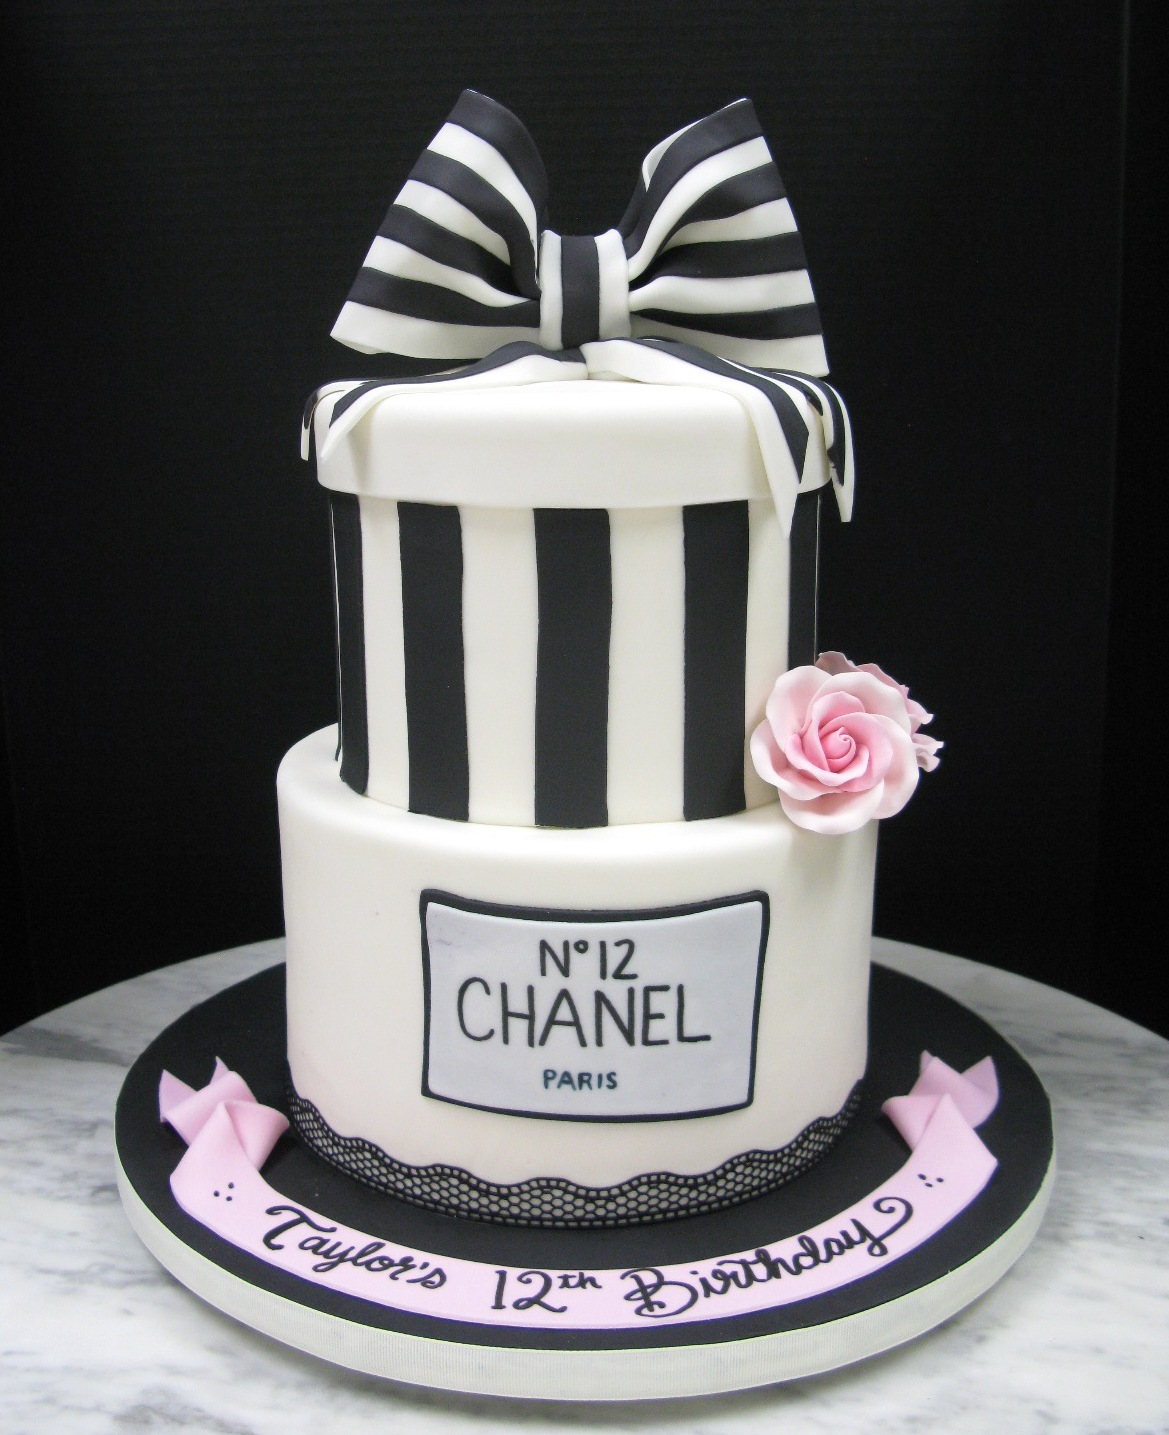 Chanel Birthday